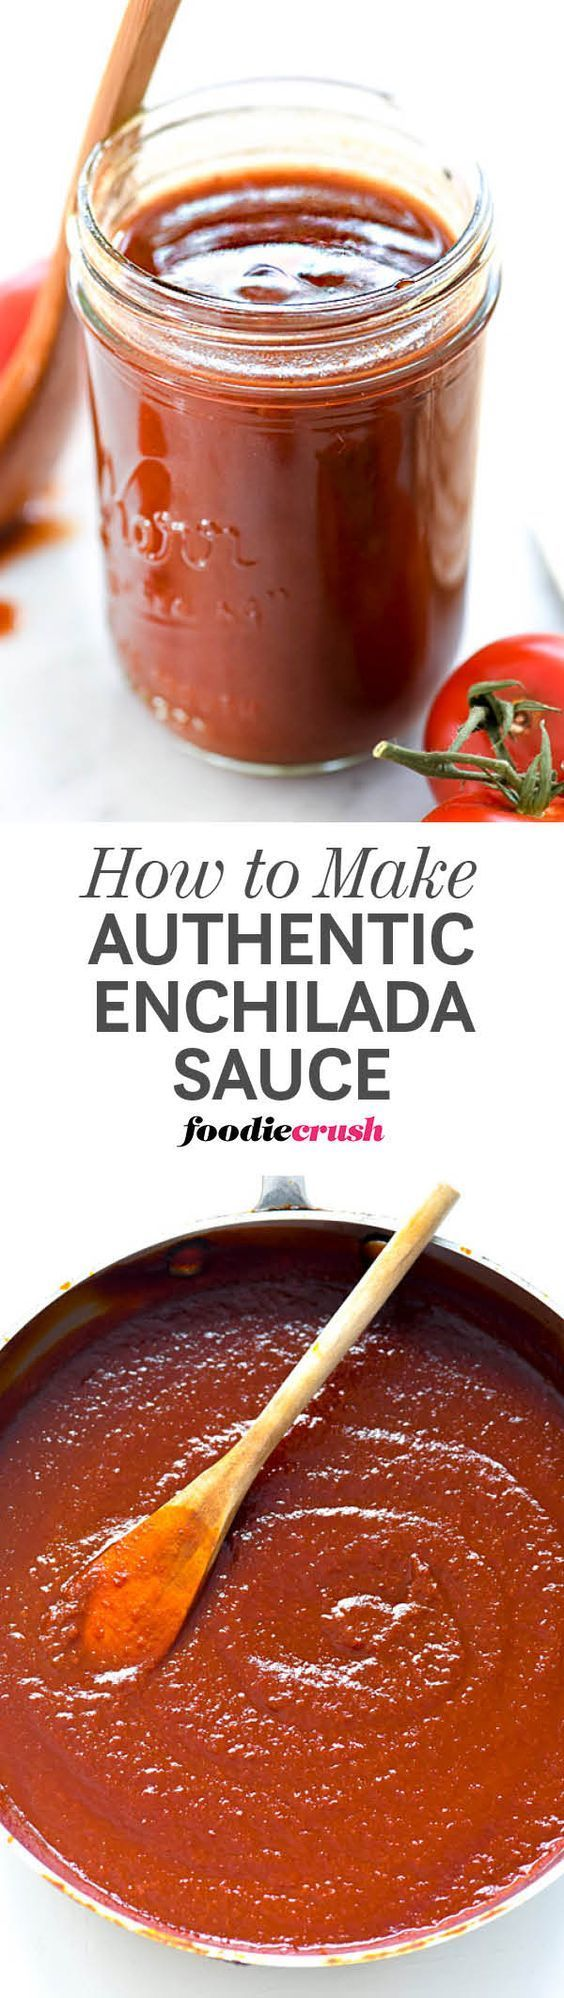 A mix of dried New Mexico and guajillo chiles plus Mexican spices create an authentic homemade red enchilada sauce for enchiladas, chilaquiles and more. | foodiecrush.com